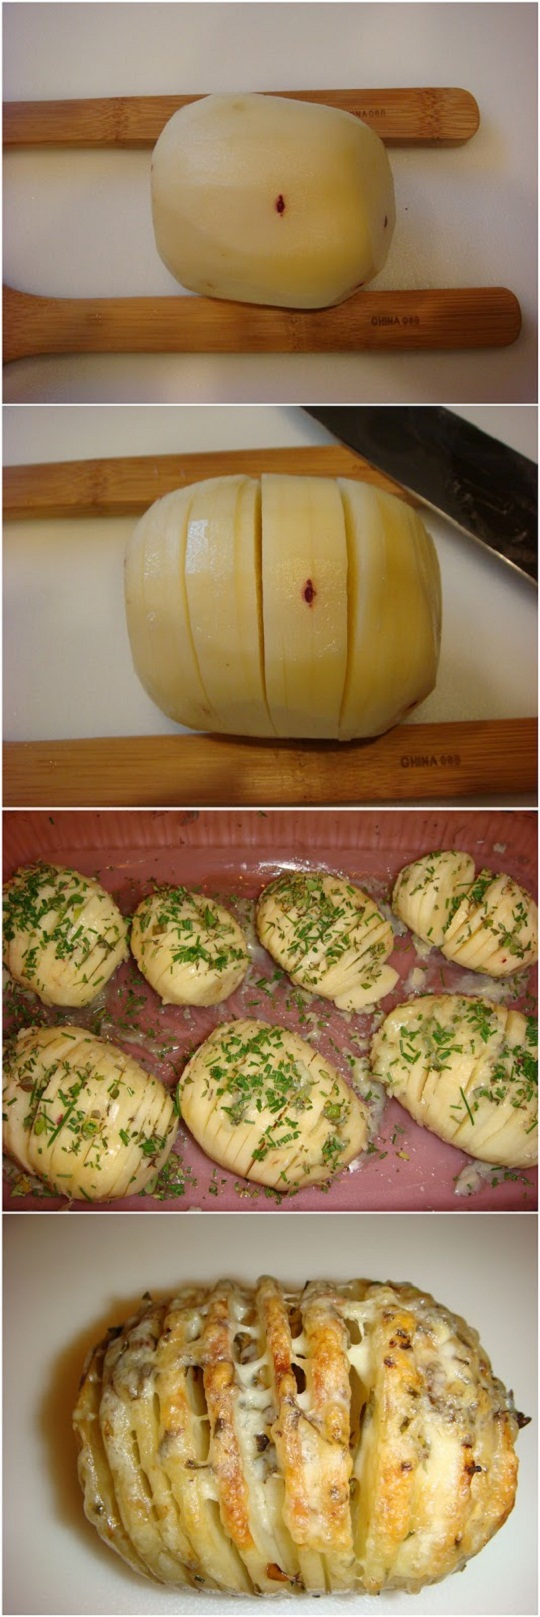 Sliced-Baked-Potatoes-with-Herbs-and-Cheese-Recipe